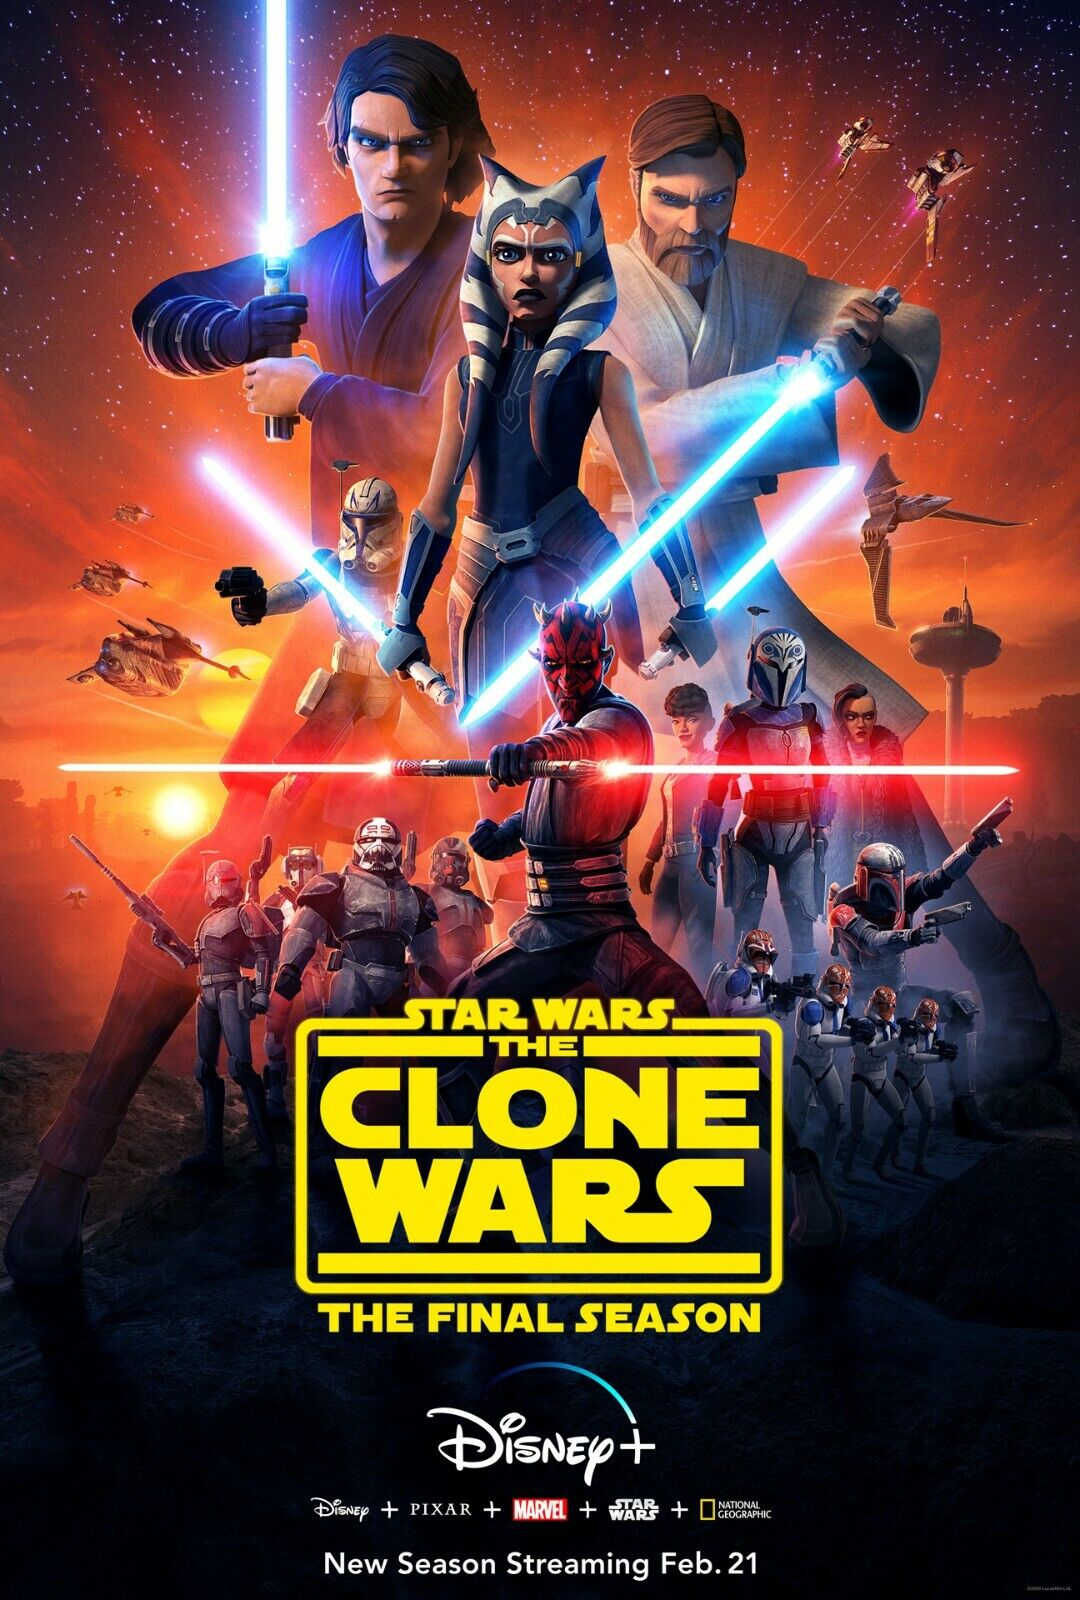 Star Wars The Clone Wars poster (a)  -  11 x 17 inches -